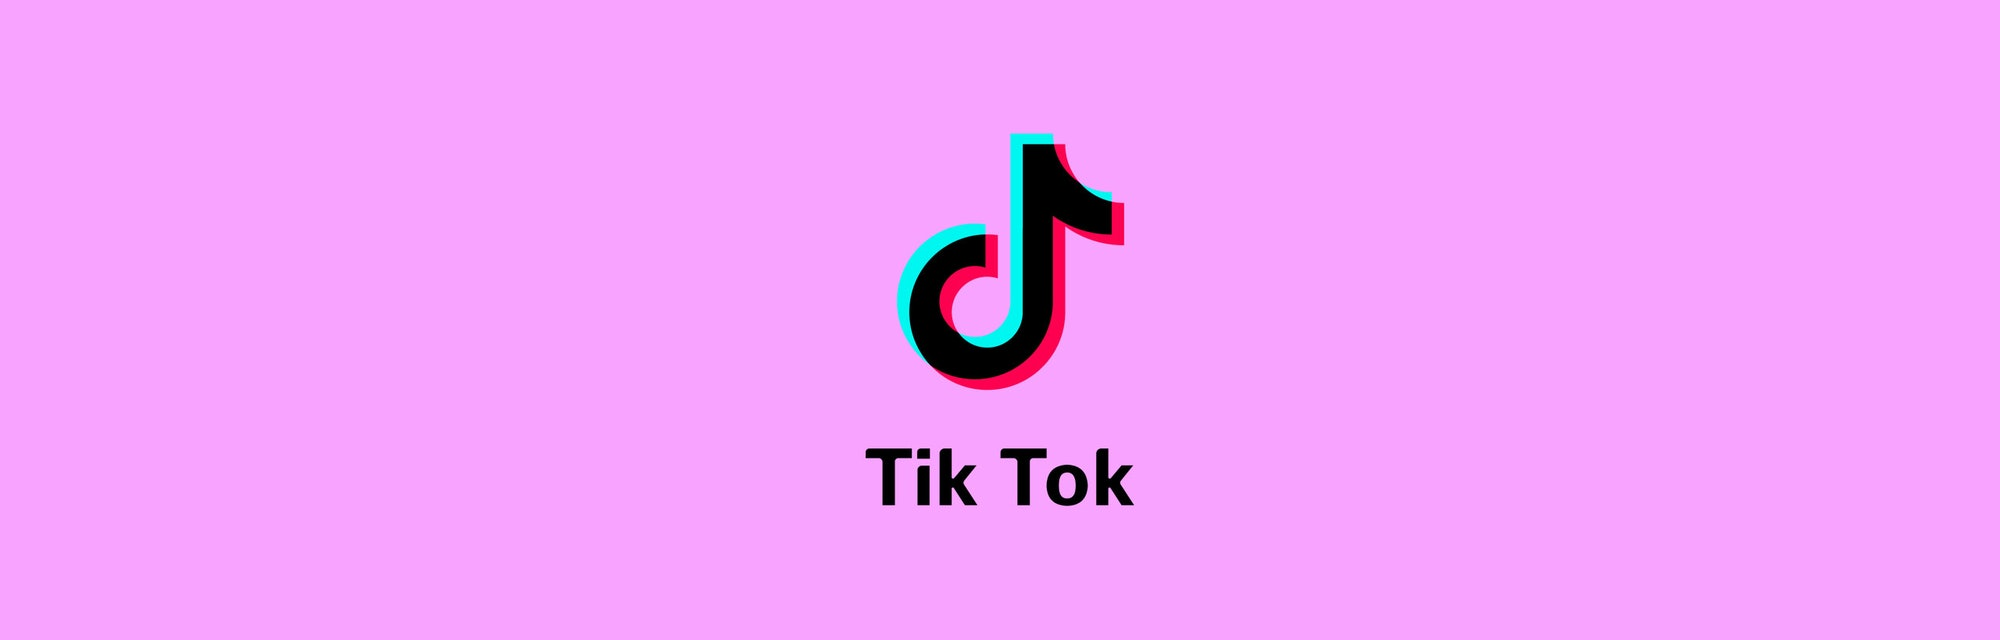 How to find someone on tiktok website